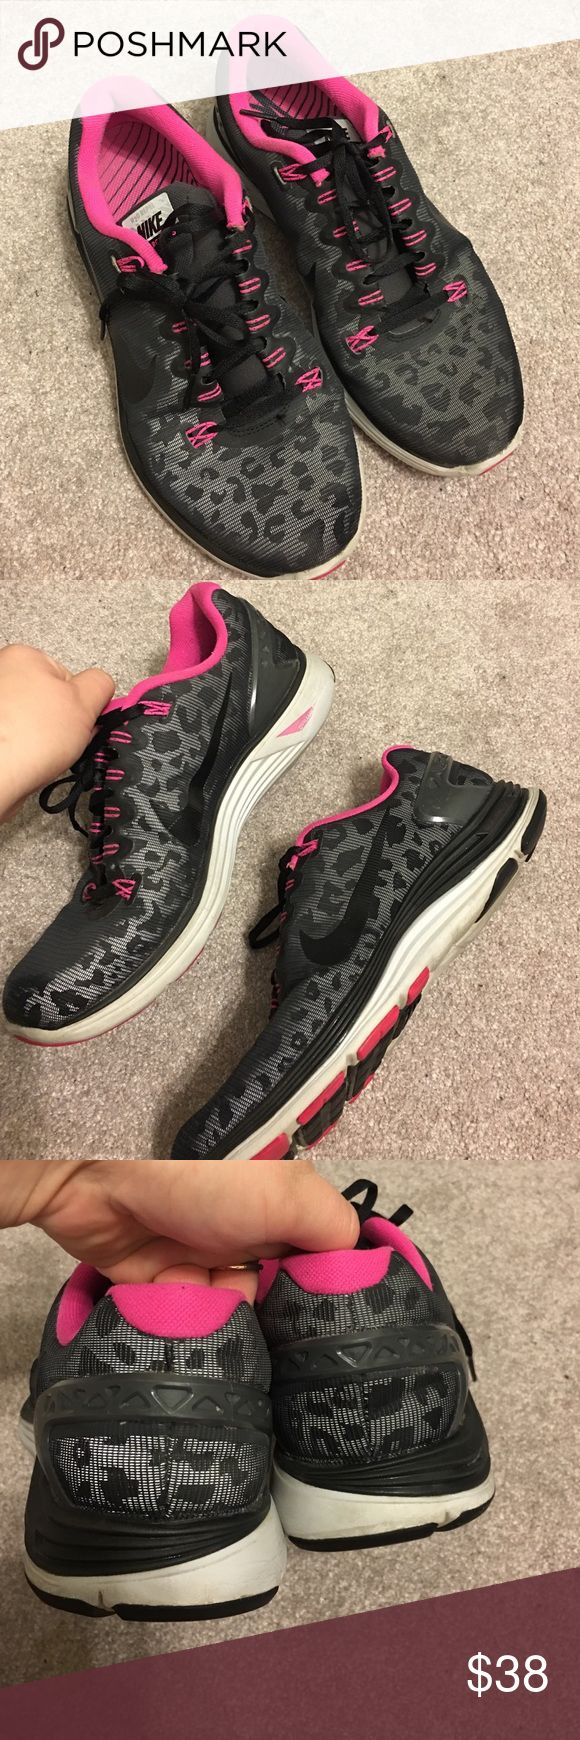 Cheetah print Nike Lunarglide 5 tennis shoes. Women's cheetah print lunarglide tennis shoes. Womens size 9.5, some wear to the soles of the shoe and the sides but they still look really cool. Nike Shoes Athletic Shoes